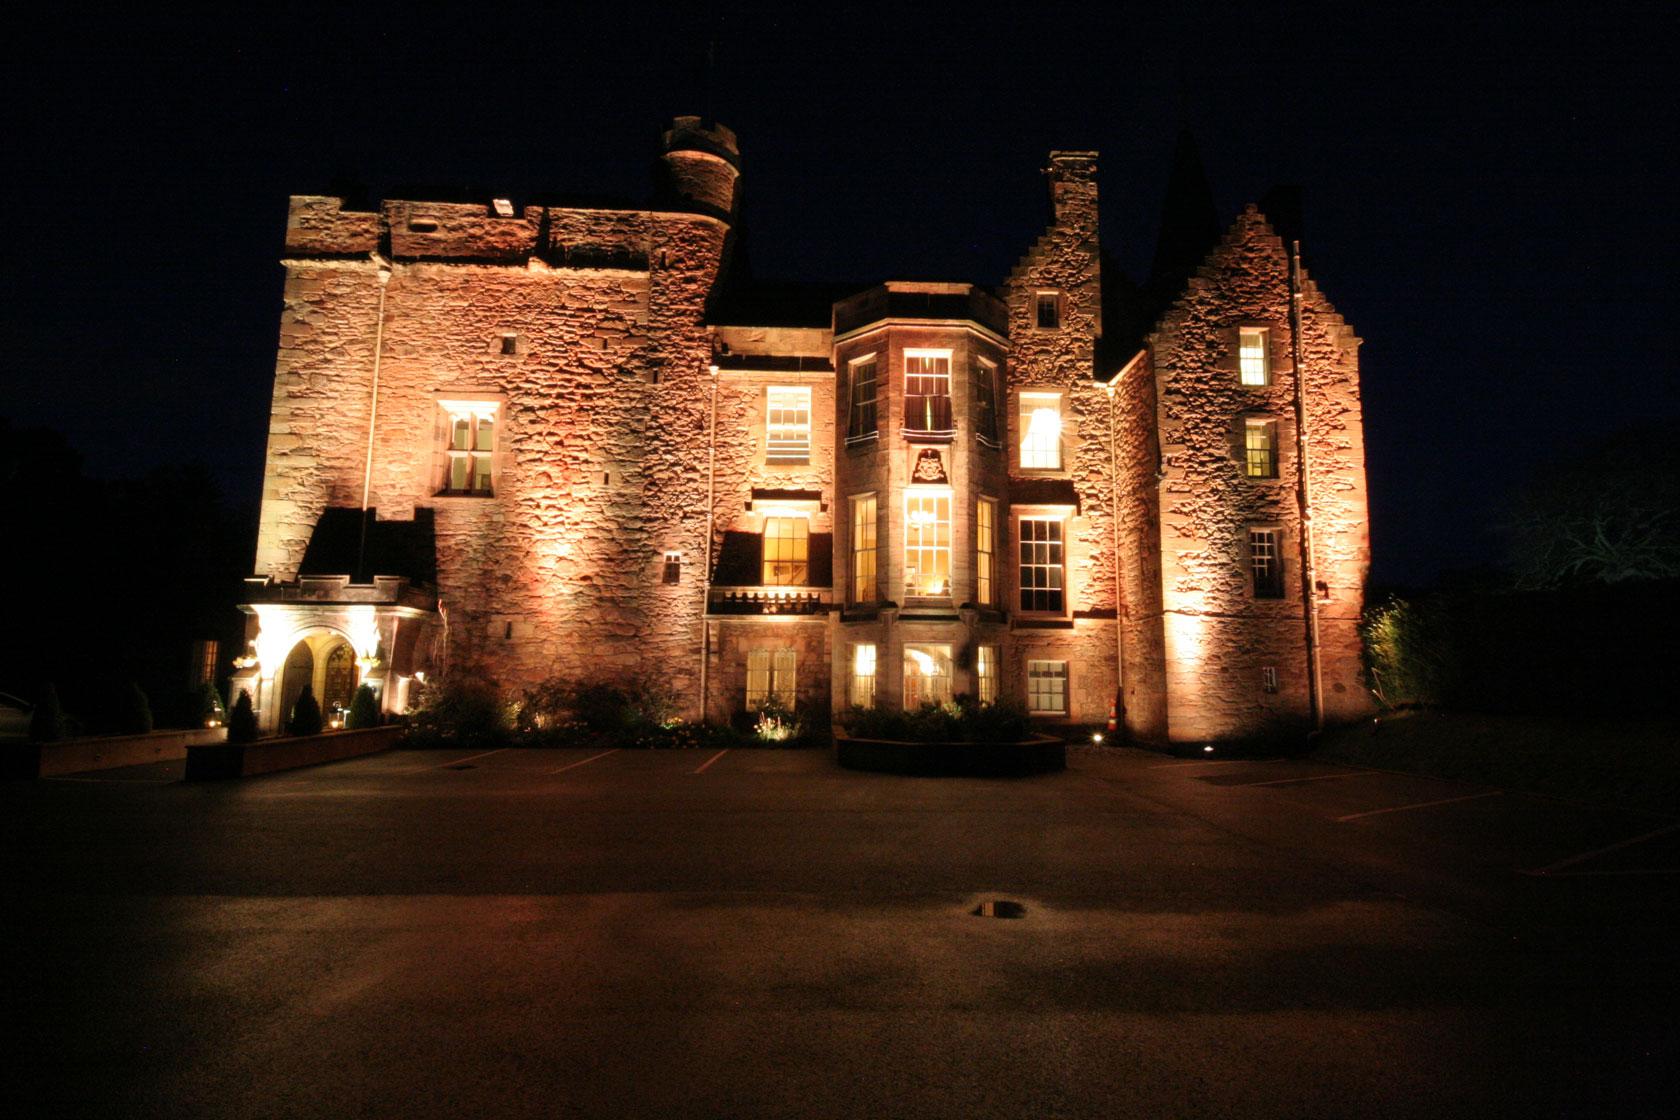 Carberry Tower Castle at night